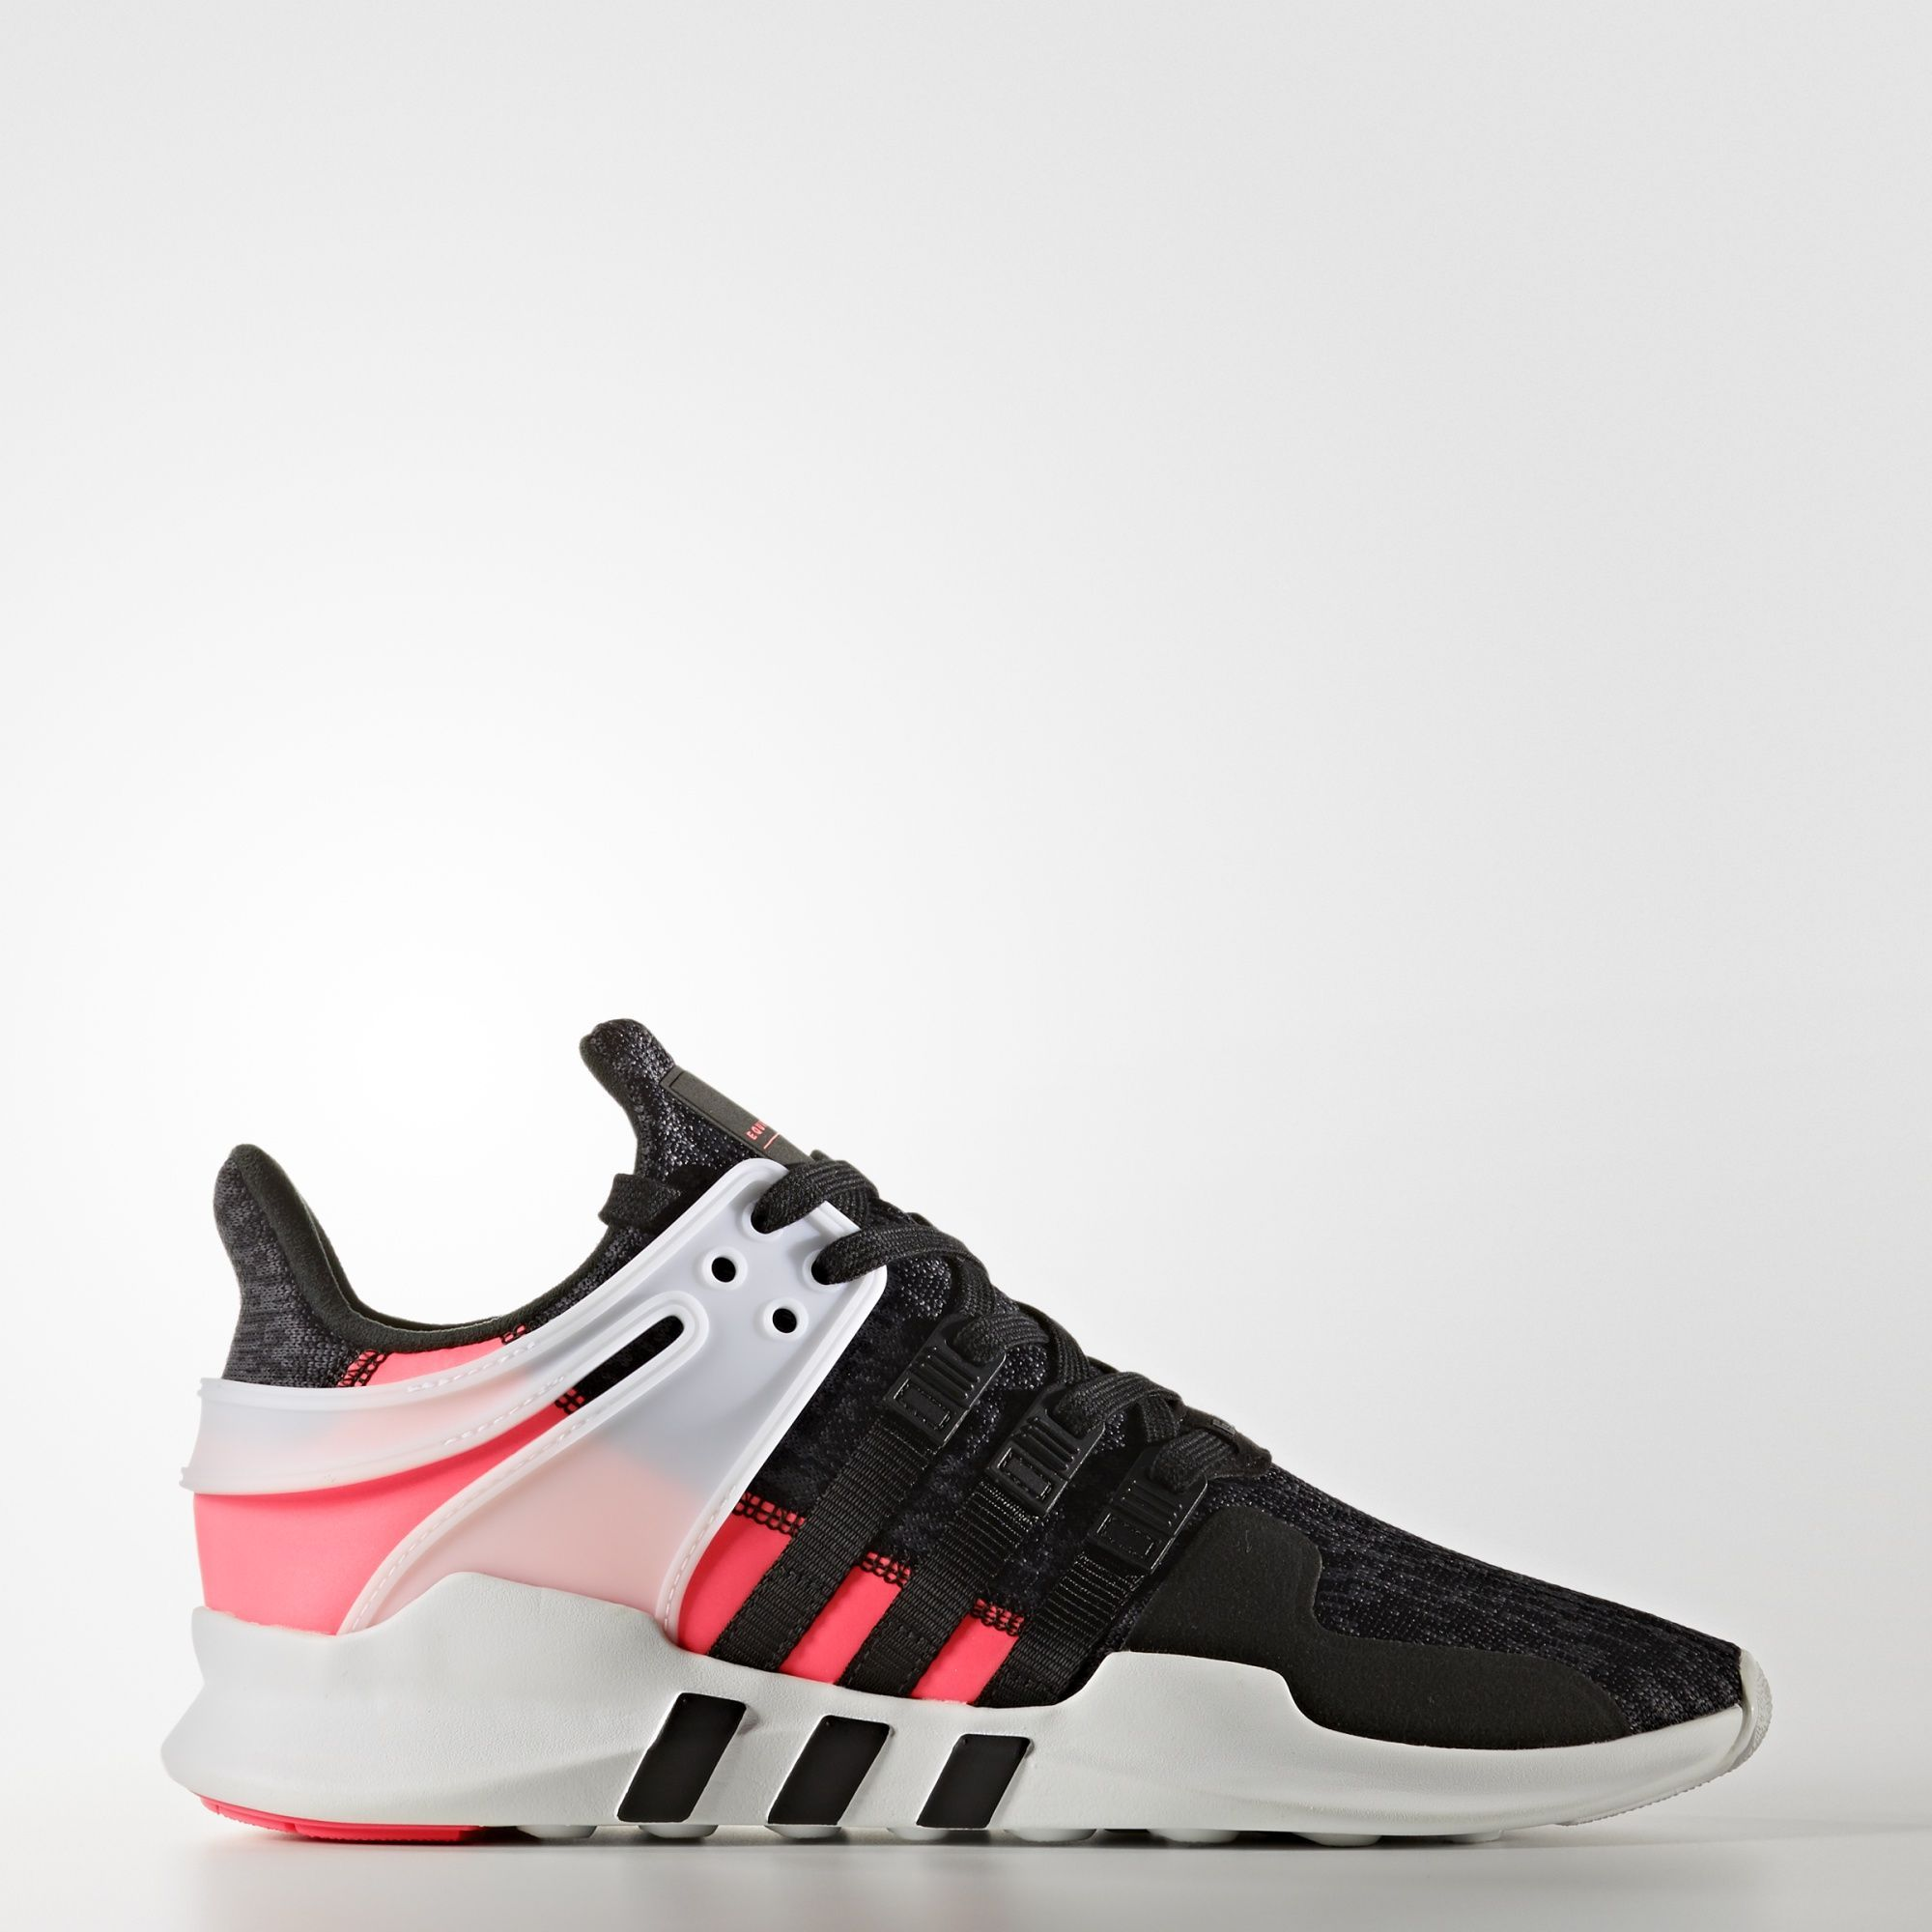 With roots in the original '90s Equipment running shoes, the new EQT  Support ADV